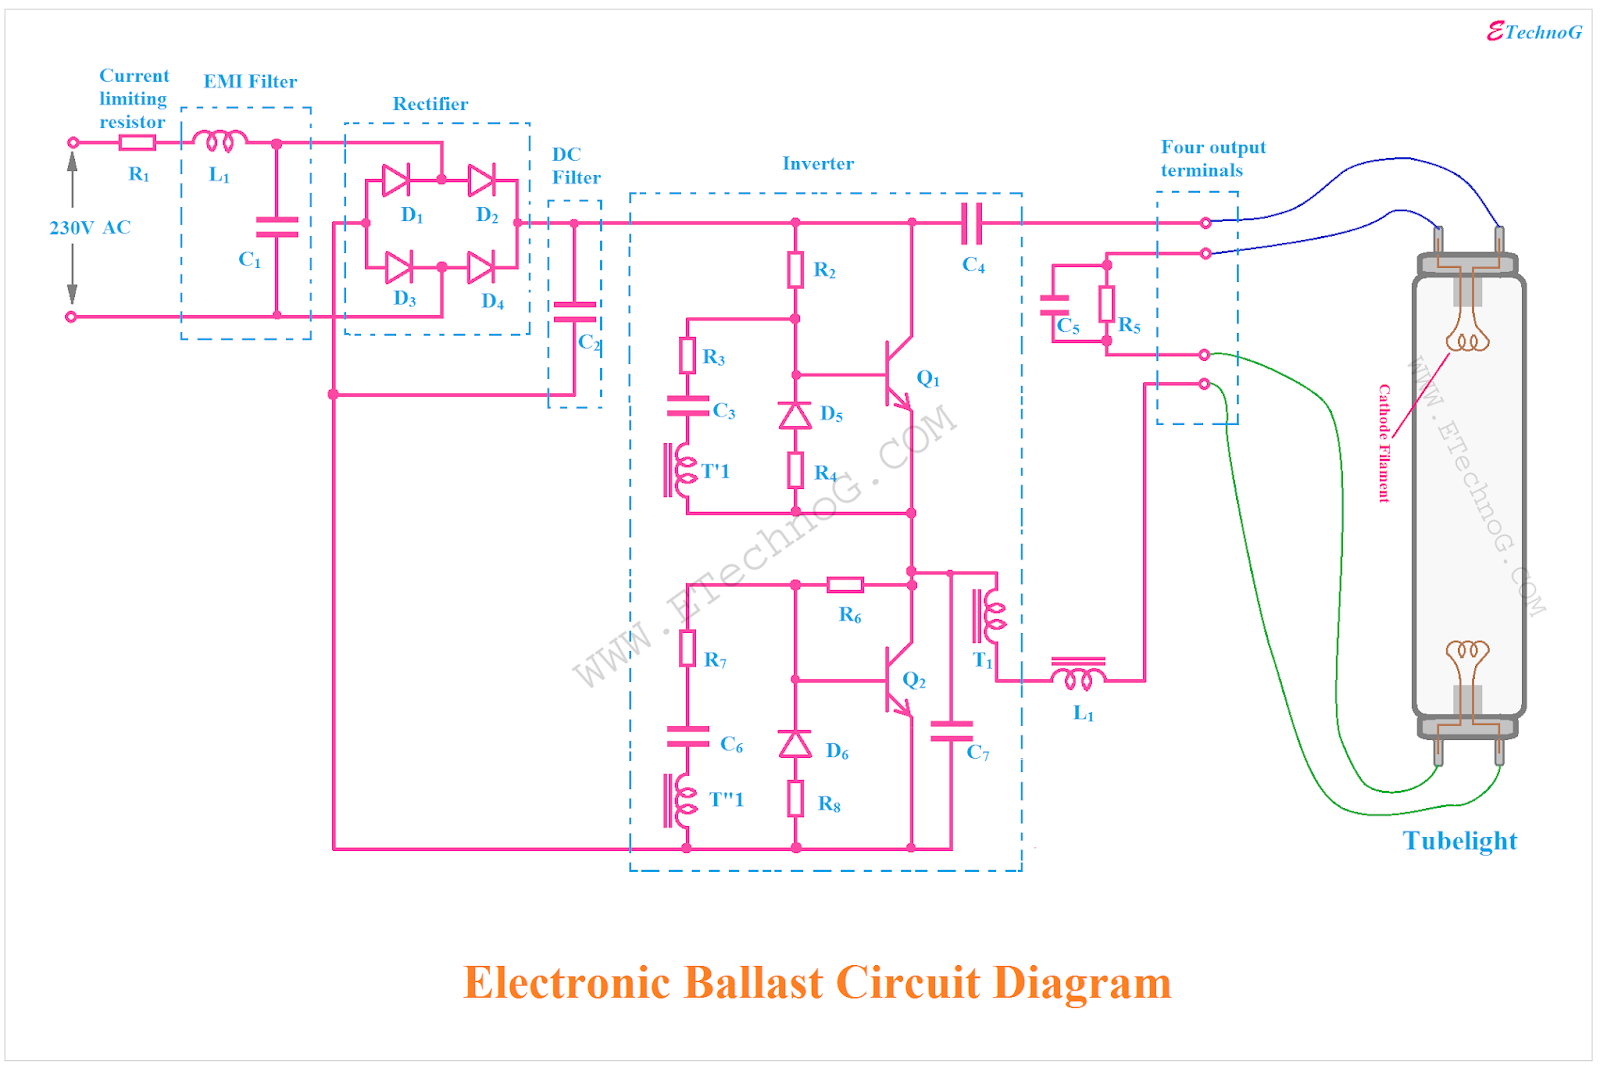 hight resolution of explained electronic ballast circuit diagram and working etechnog electronic ballast circuit diagram on electronic choke circuit diagram